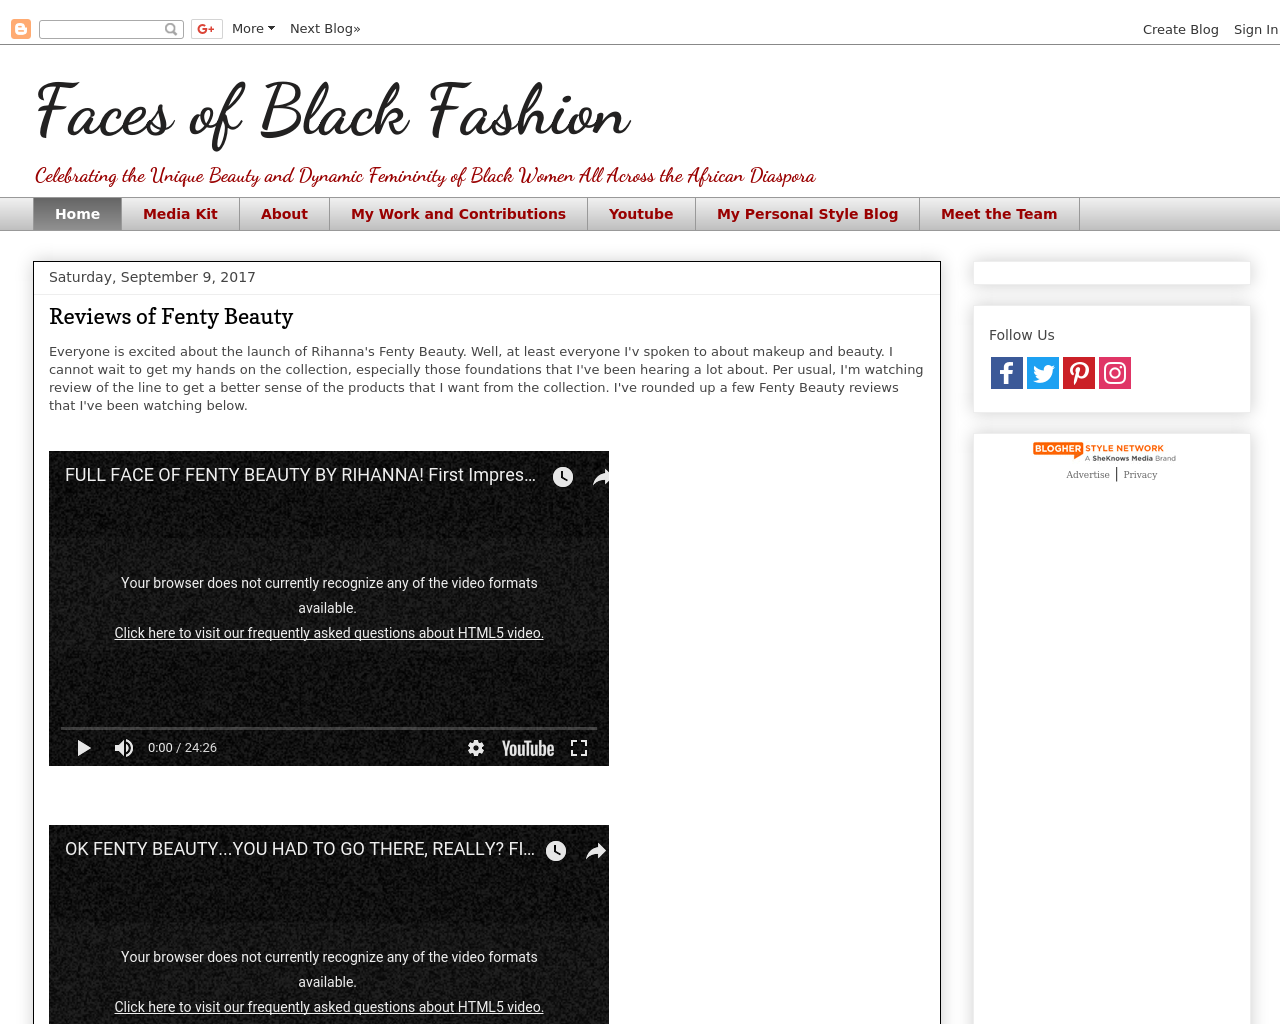 Faces-of-Black-Fashion-Advertising-Reviews-Pricing